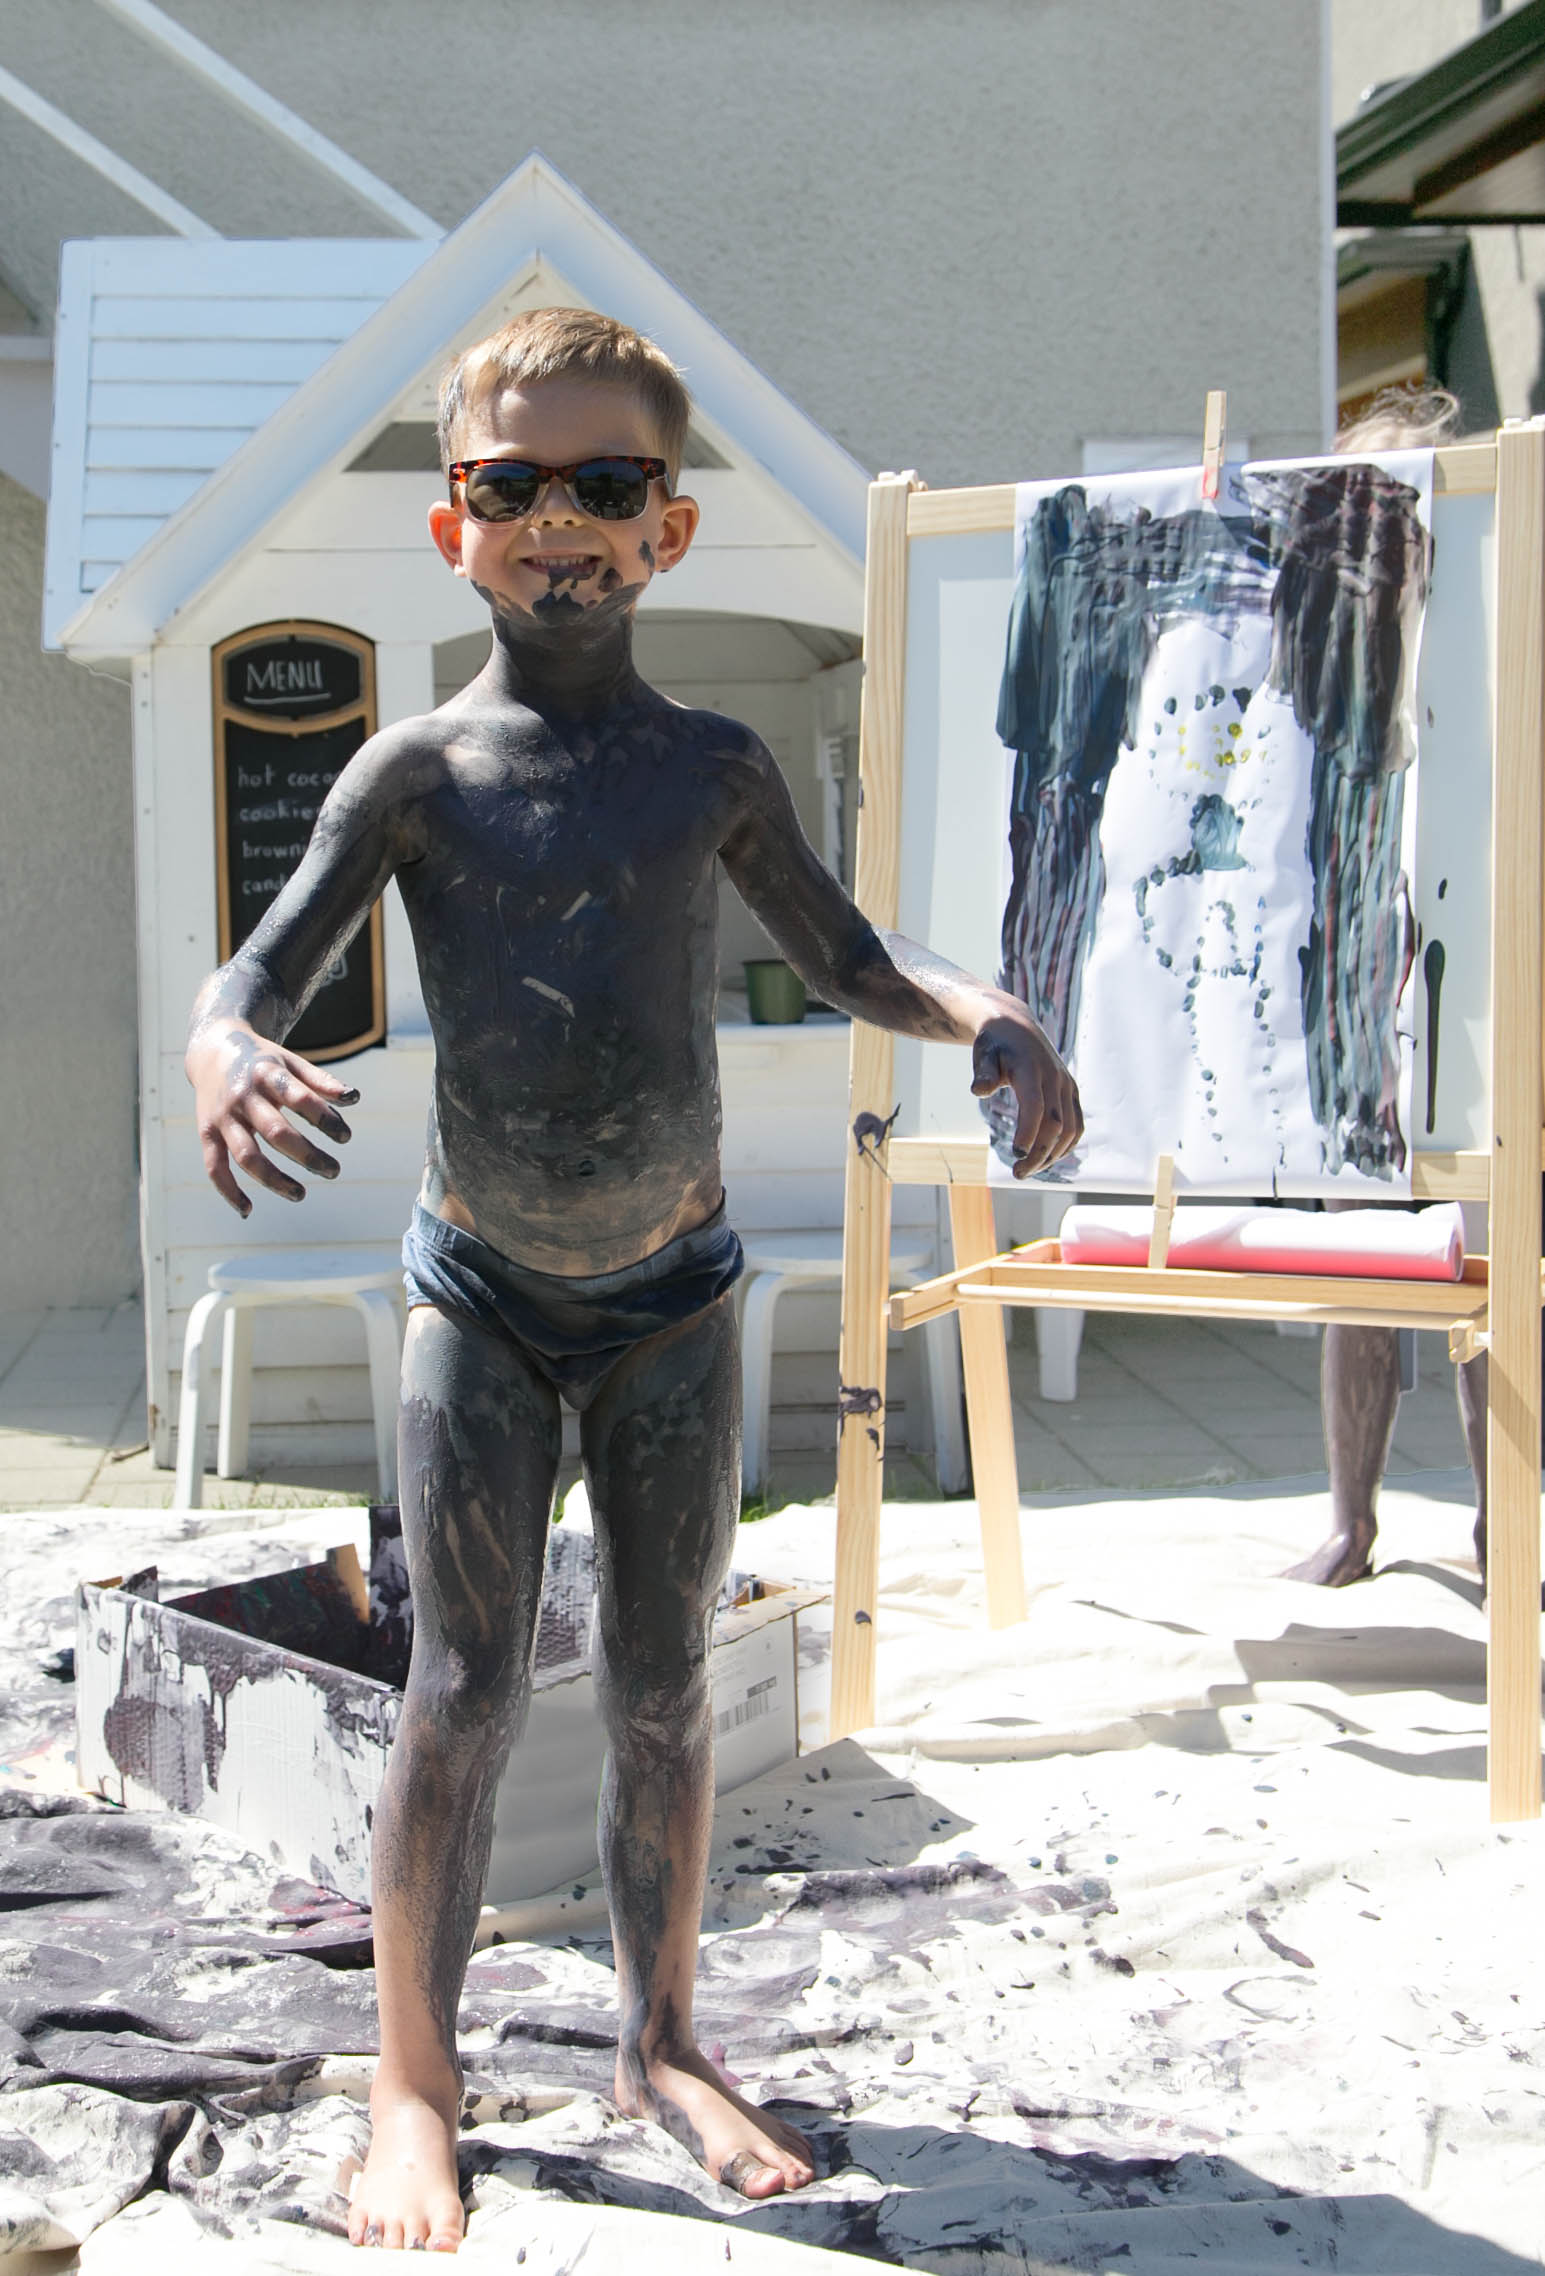 paint covered kid